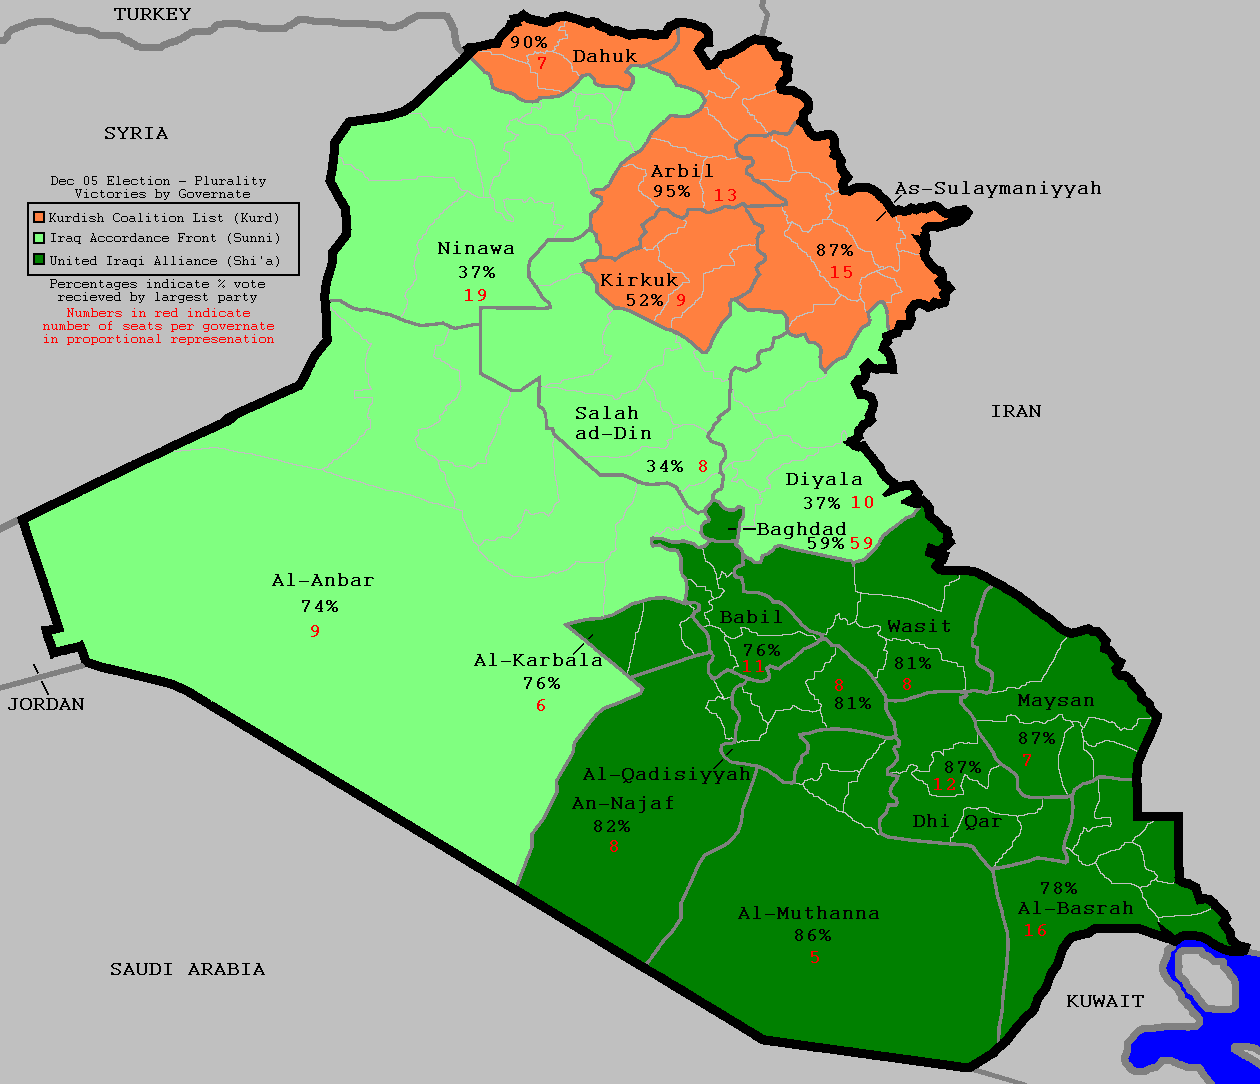 The results of Iraq's December 2005 elections just happen to line up neatly with what its future borders might look like.